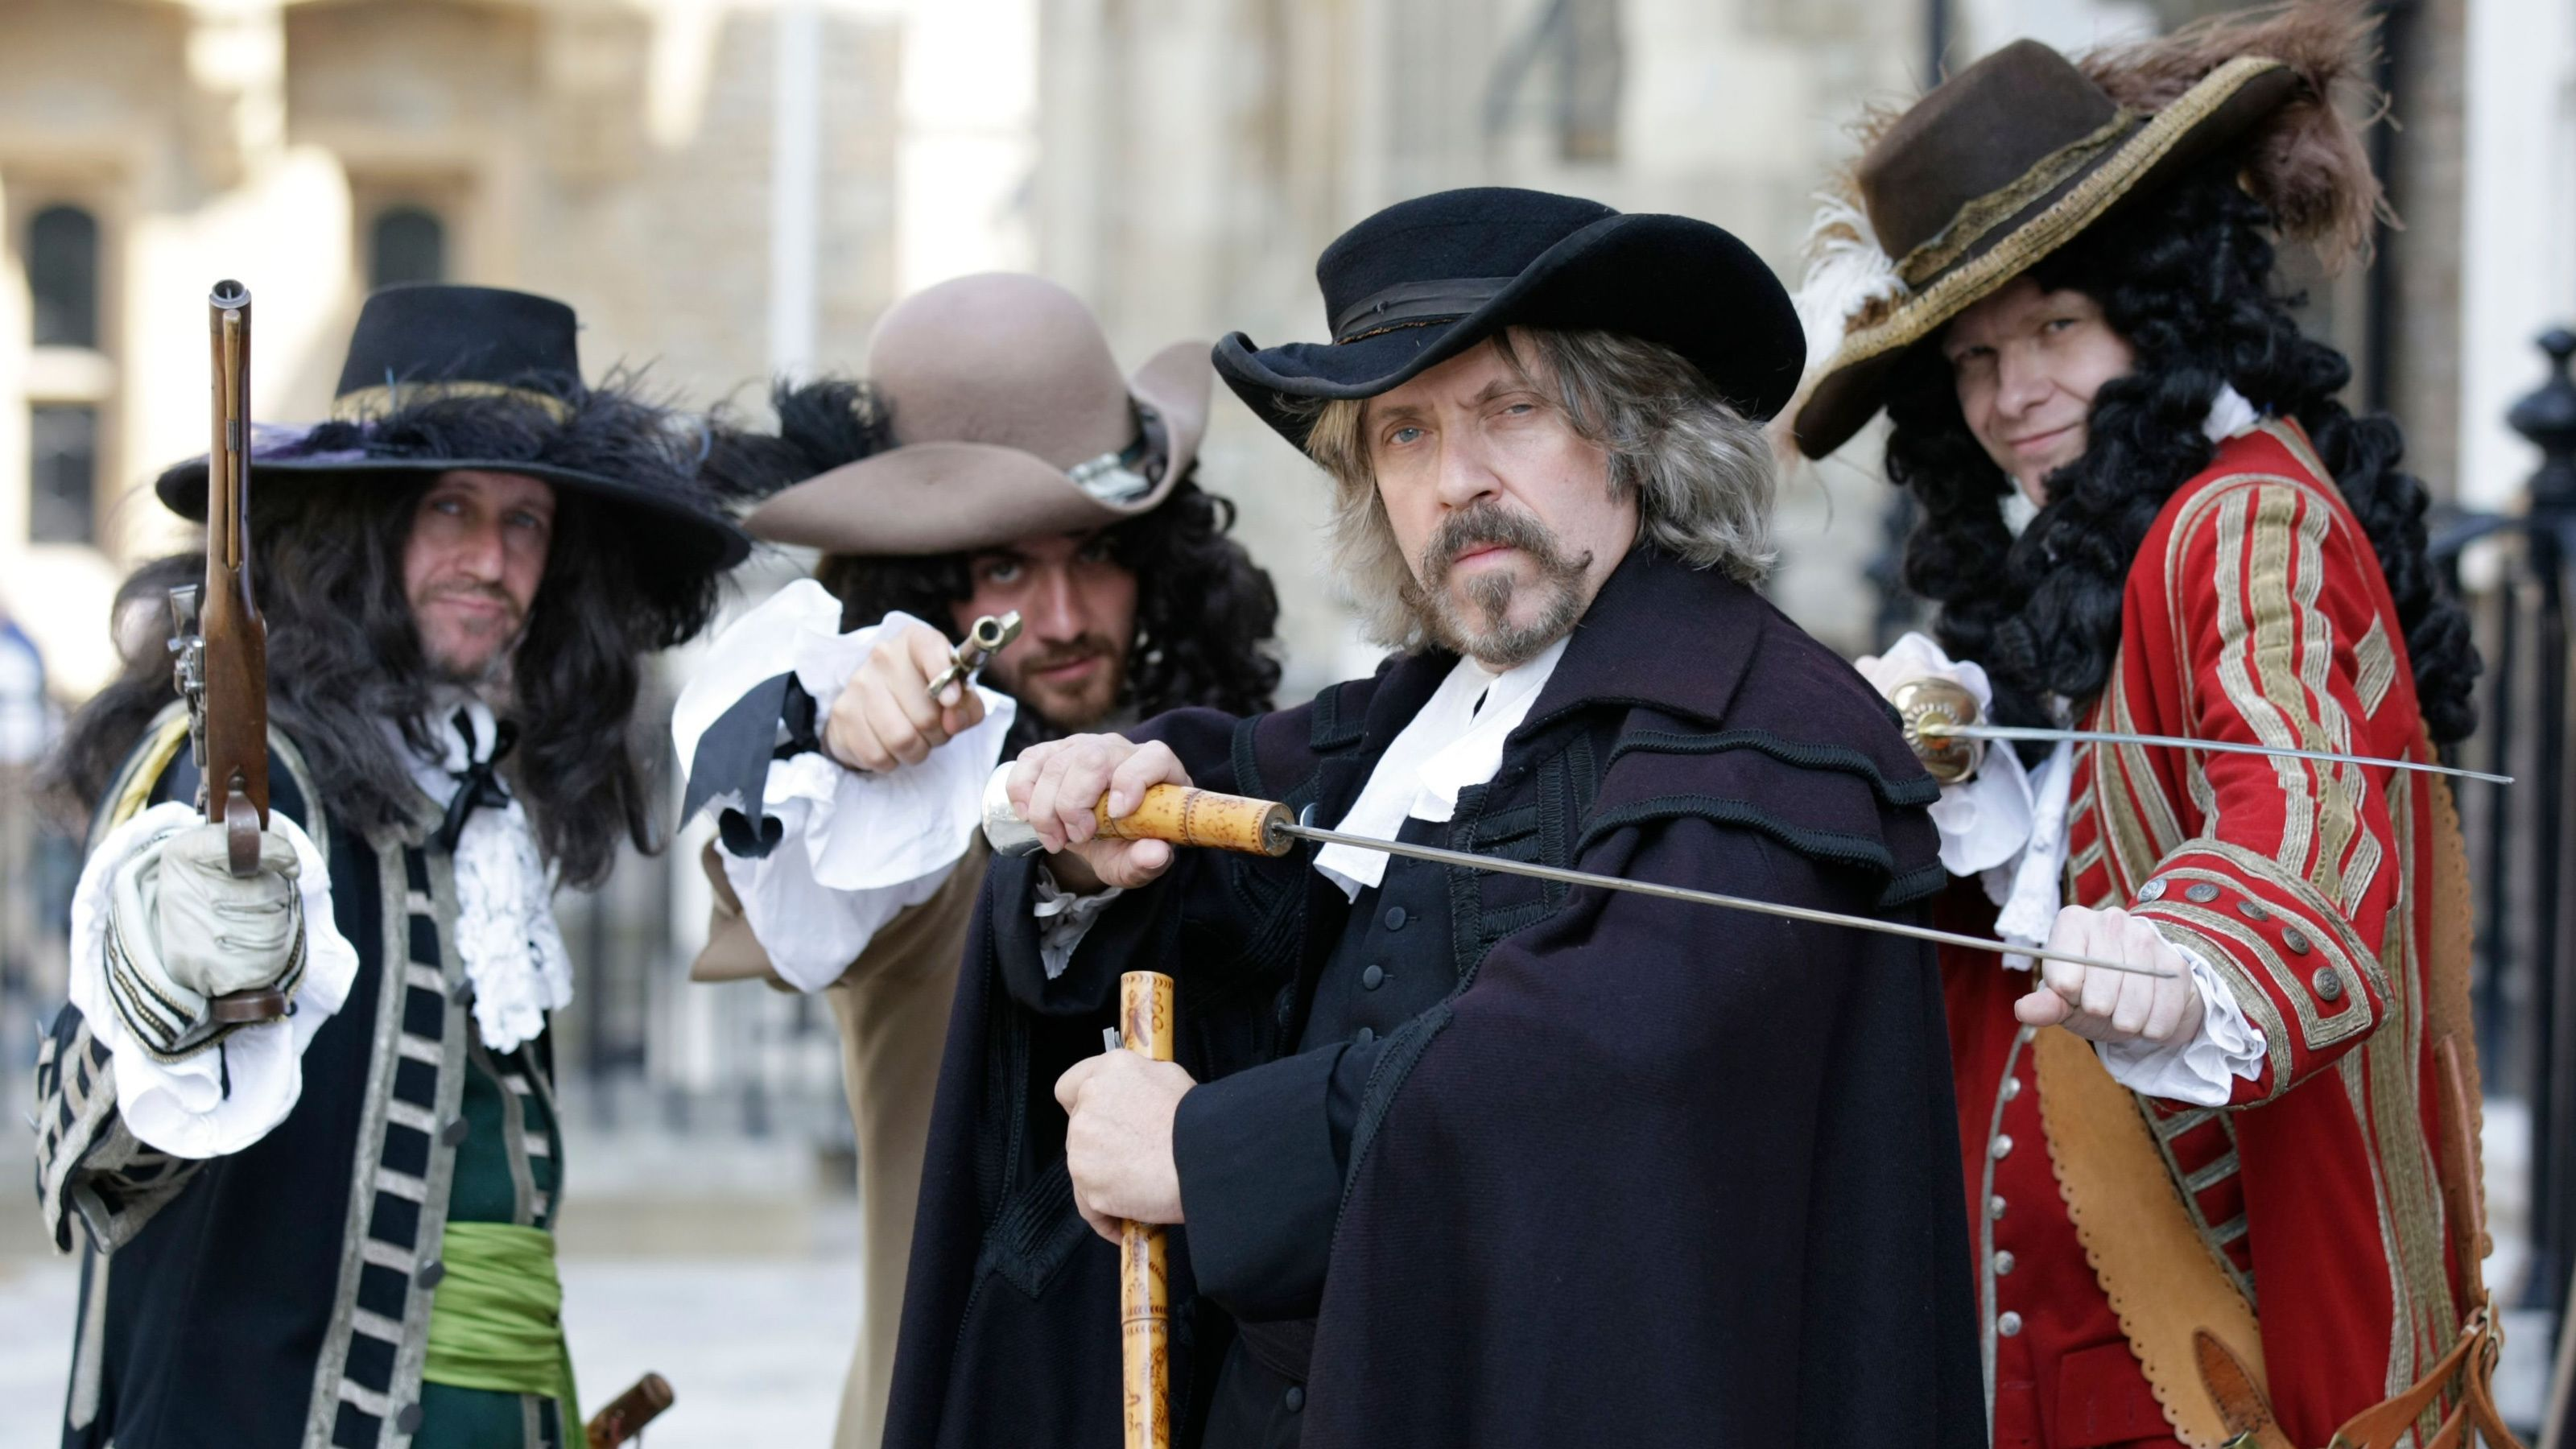 Character actors with sabers and pistols in Tower of London